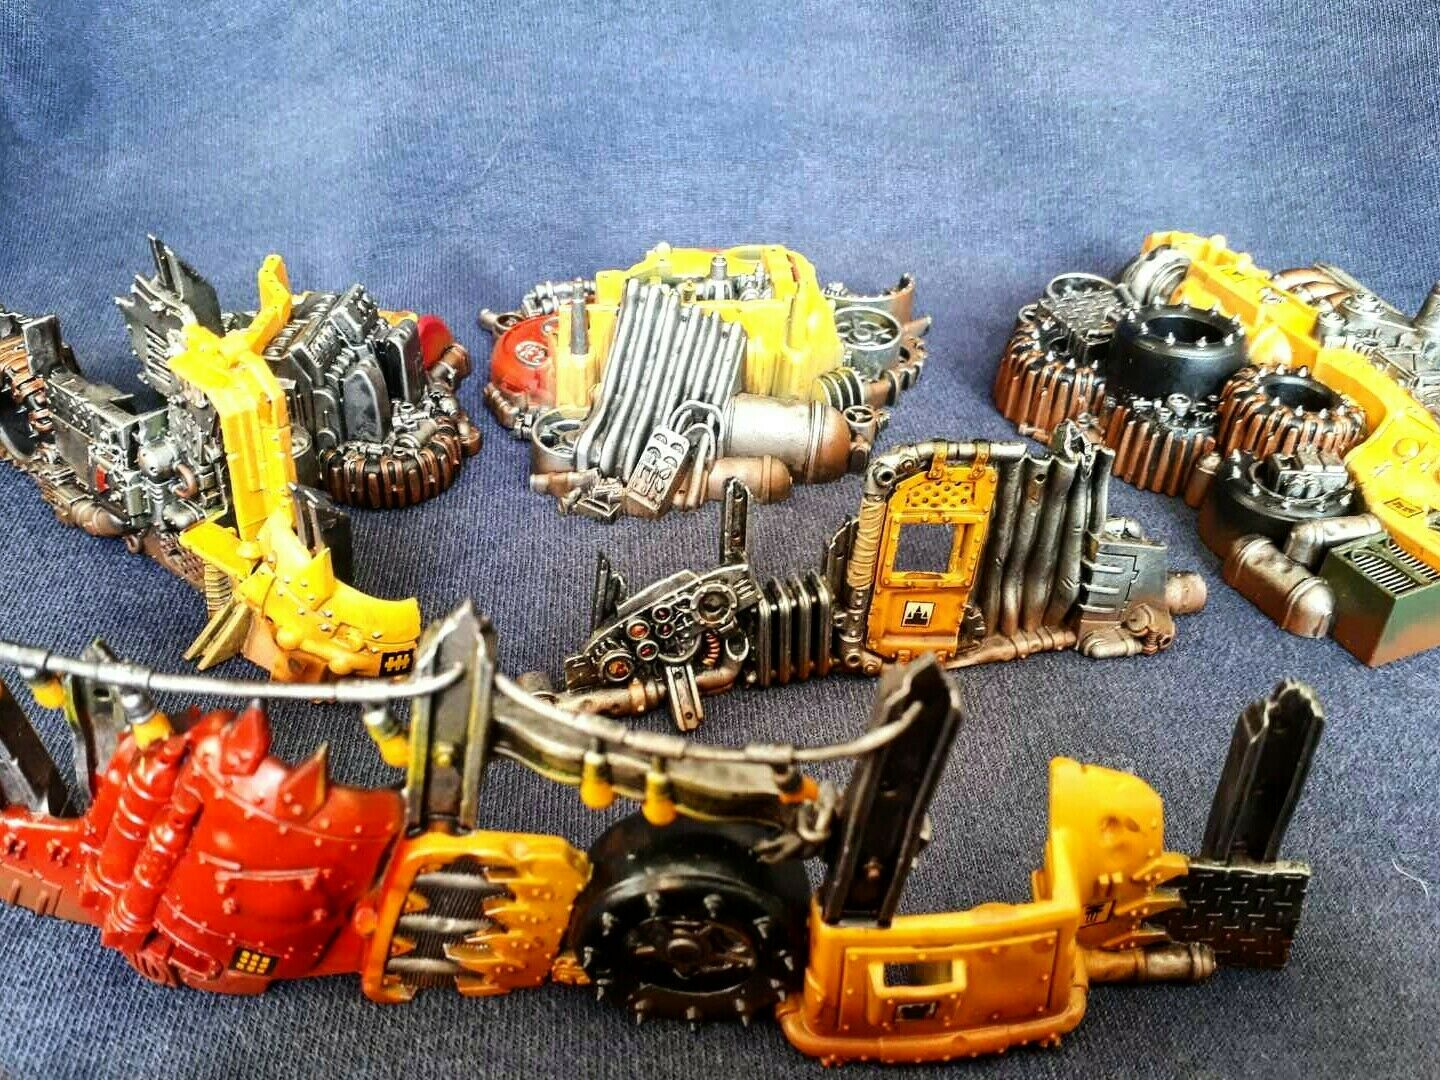 Ork Speed freeks barricades